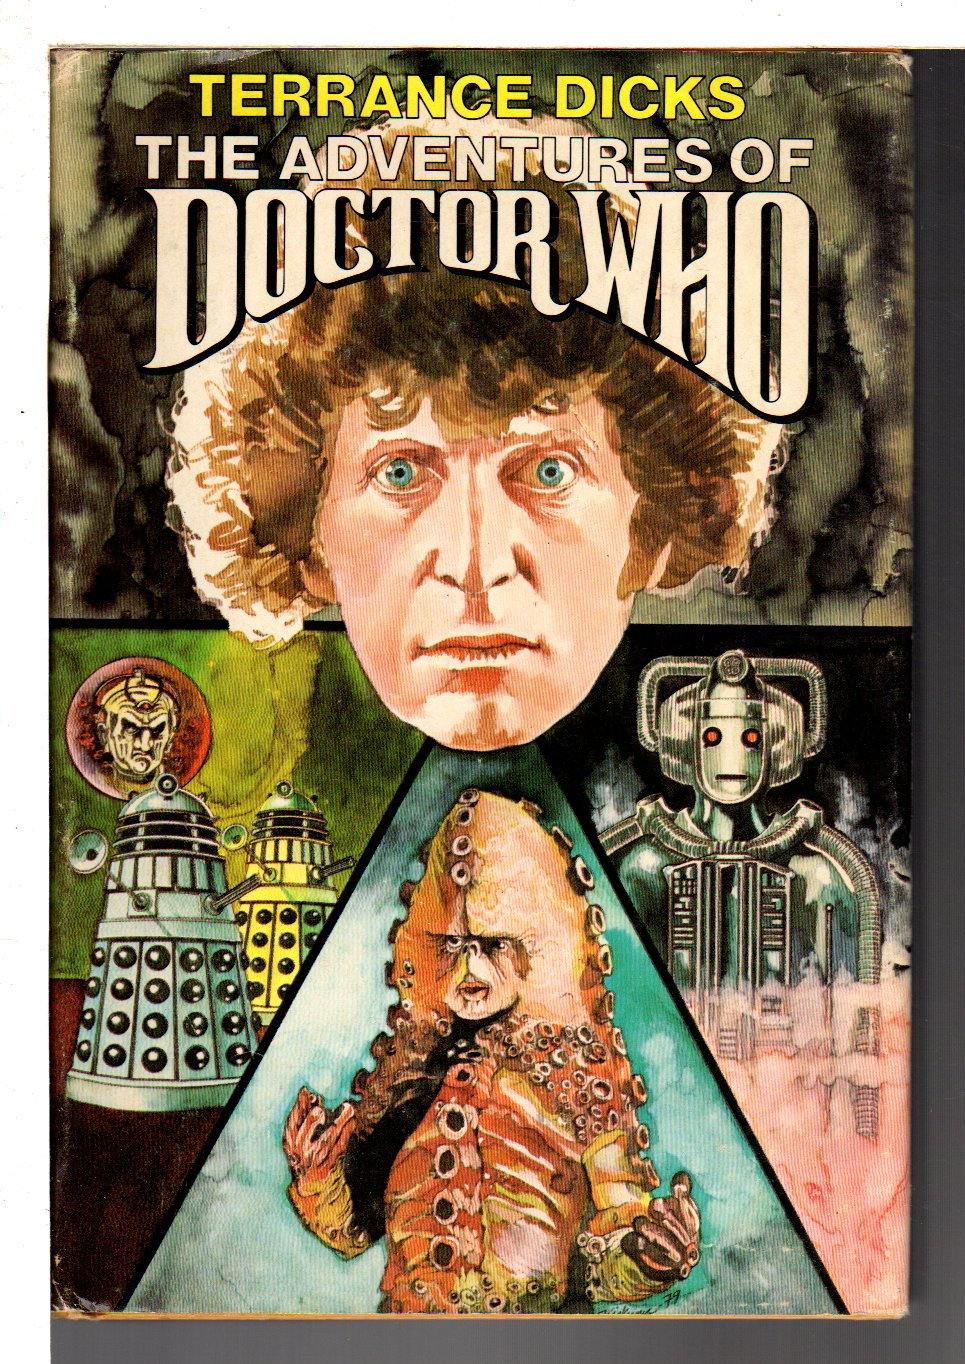 DICKS, TERRANCE - THE ADVENTURES OF DOCTOR WHO: Doctor Who and the Genesis of the Daleks; Doctor Who and the Revenge of the Cybermen; Doctor Who and the Loch Ness Monster.